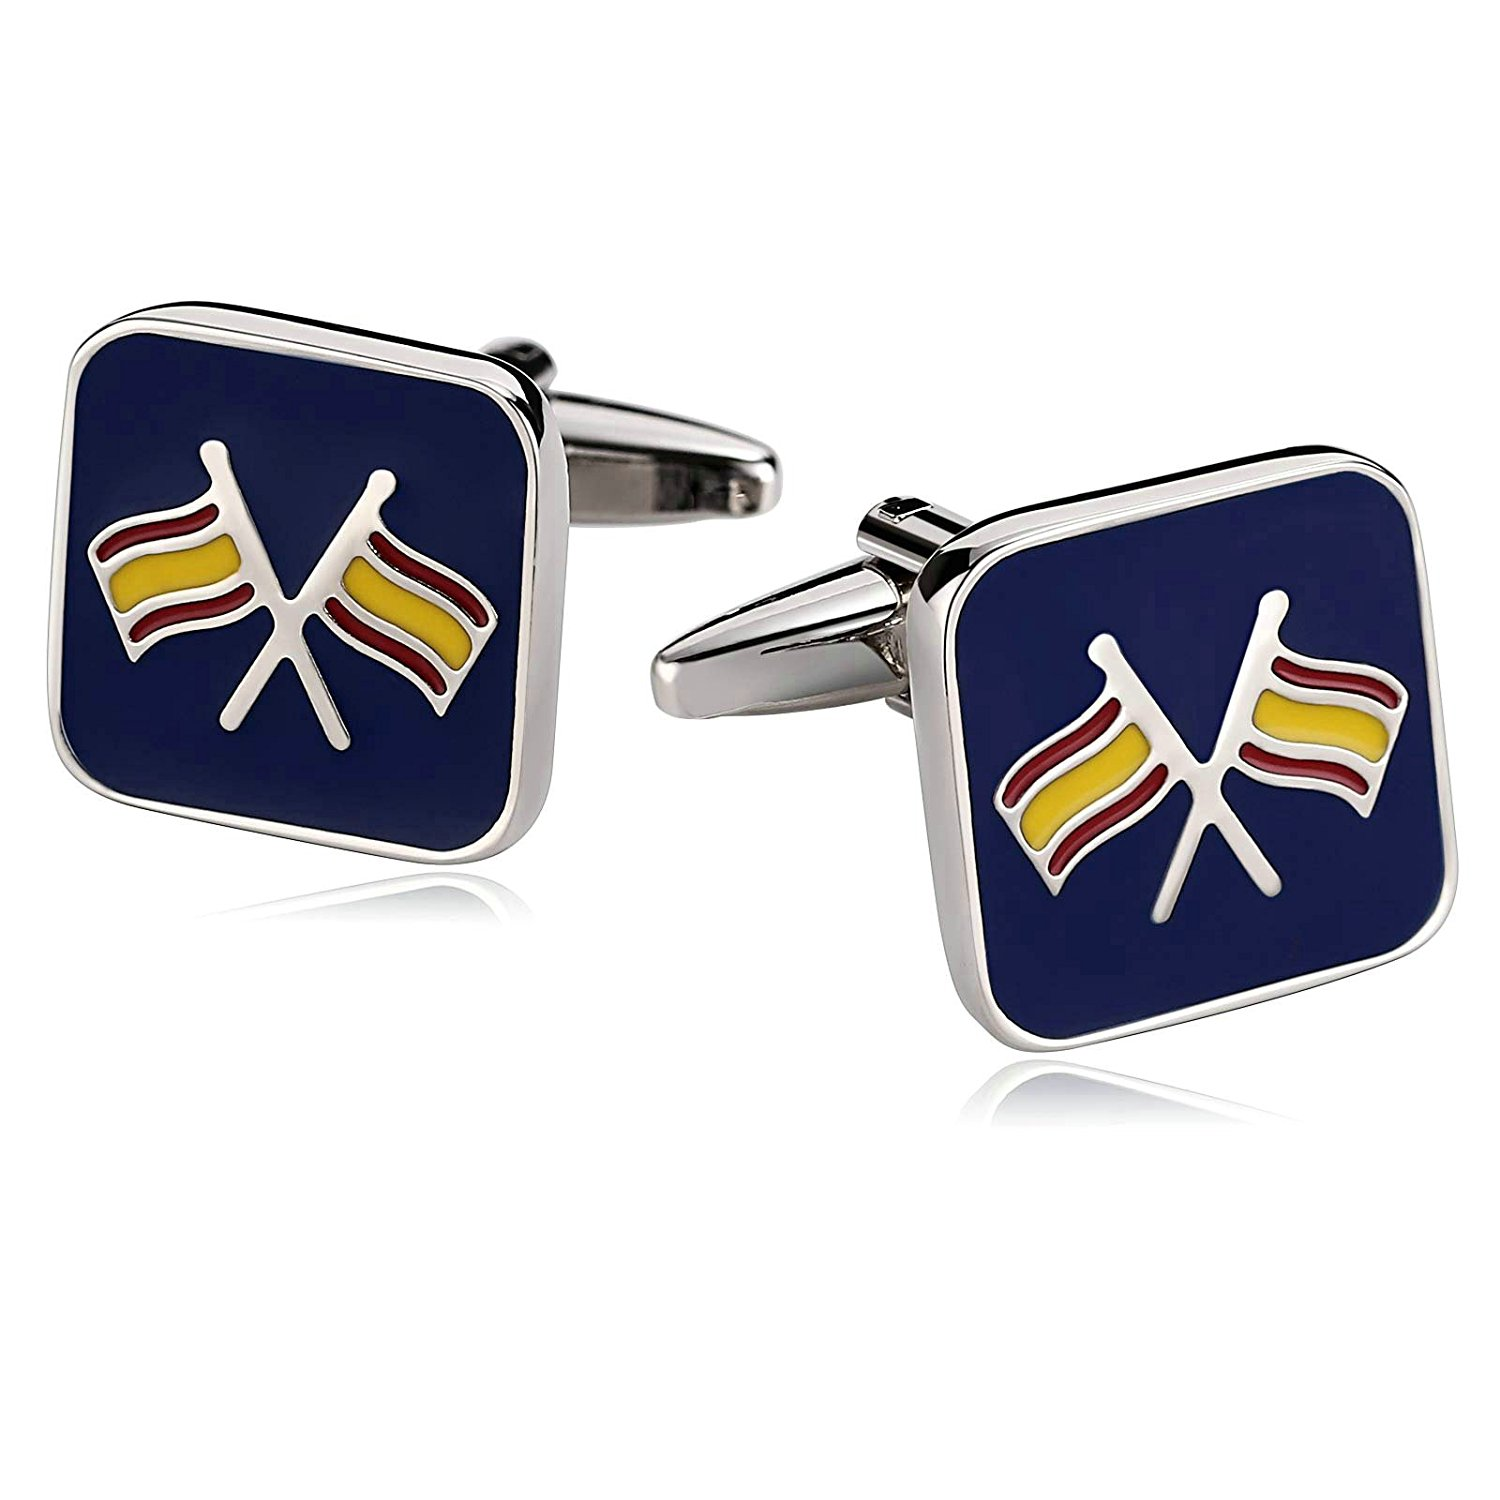 Aooaz Mens Stainless Steel Cufflinks Square Double Cross Flag Blue Cufflinks For Men Retro With Gift Box